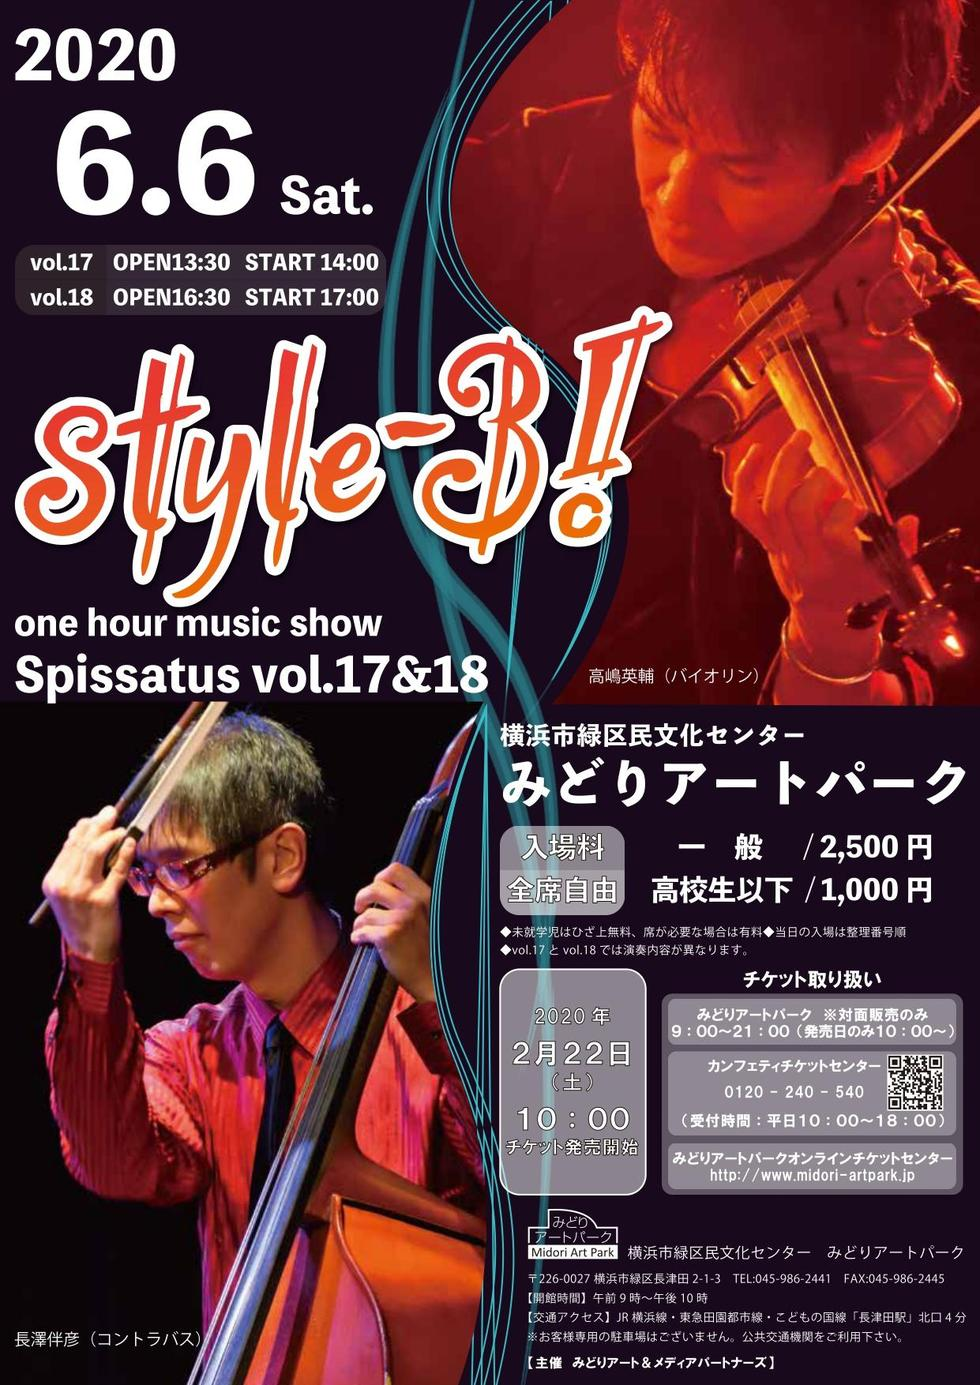 【公演延期】style-3! one hour music show 『Spissatus』vol.17&18の写真